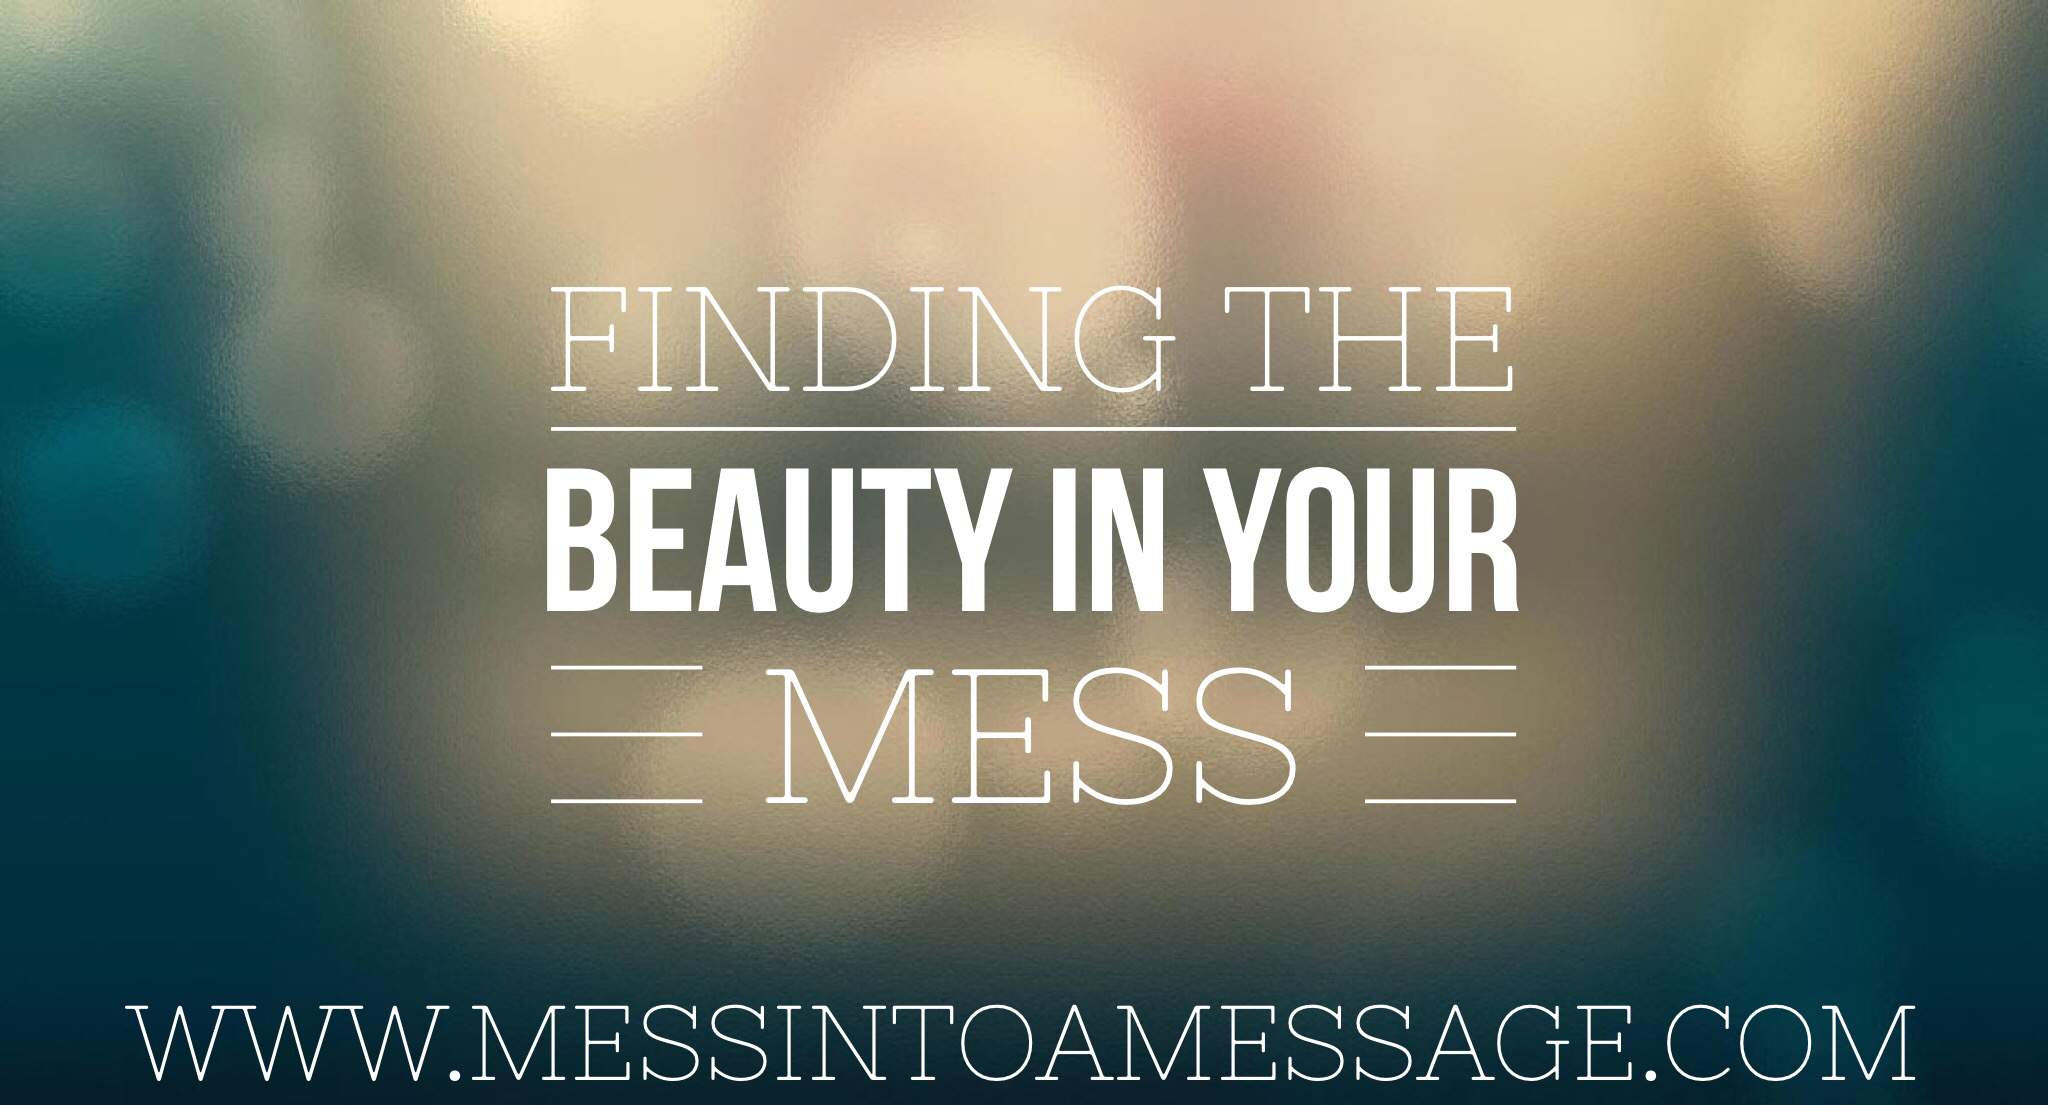 Finding the Beauty in Your MESS